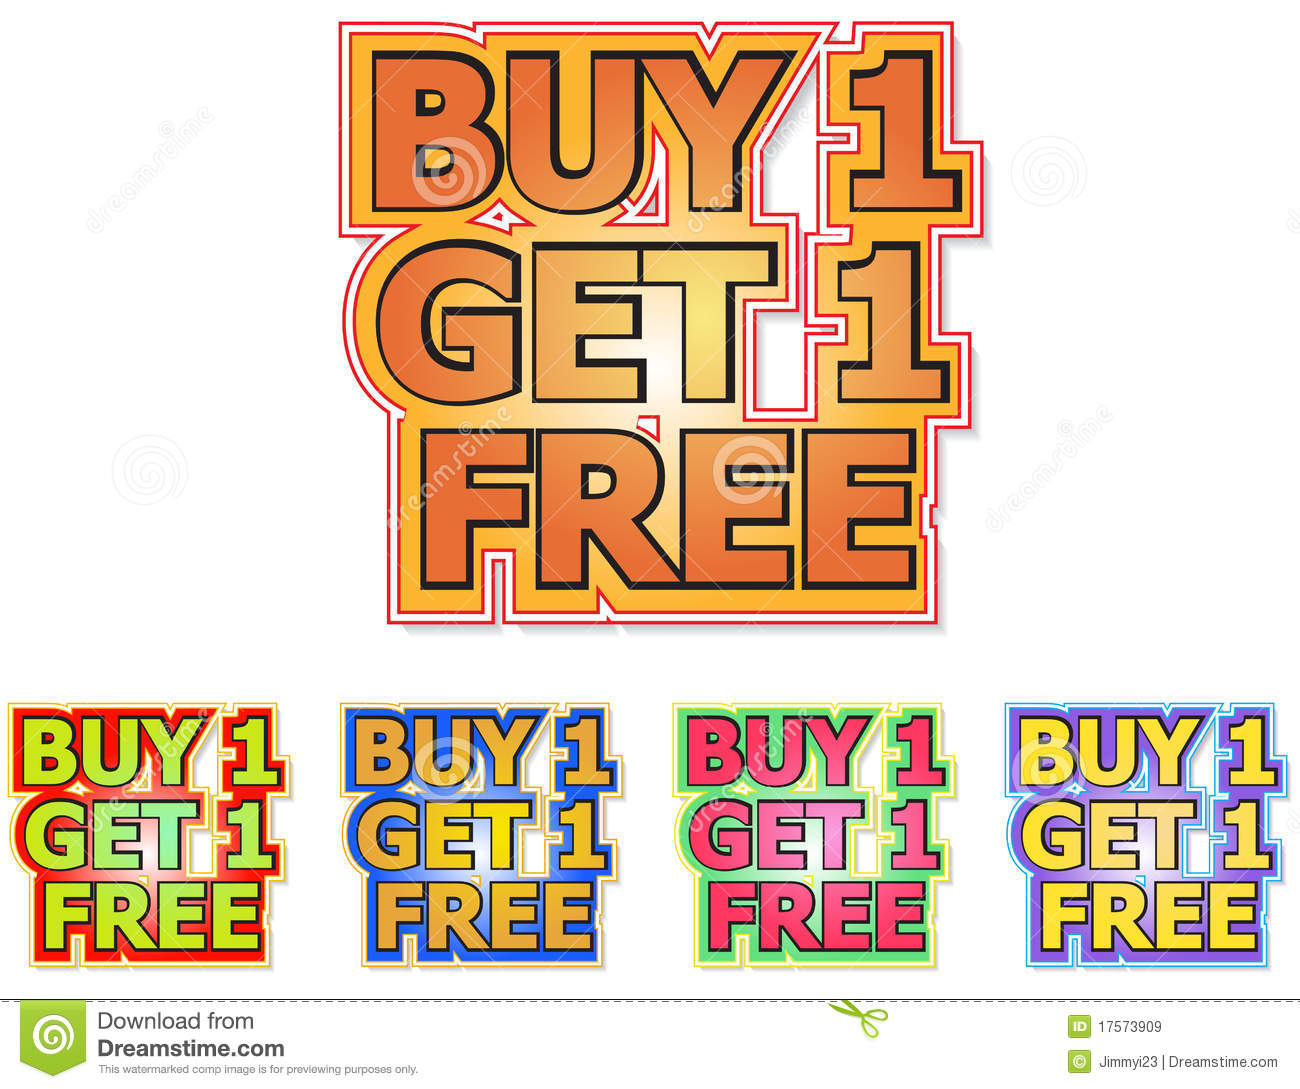 Buy 1 Get 1 Free Royalty Free Stock Images - Image: 17573909: www.dreamstime.com/royalty-free-stock-images-buy-1-get-1-free...